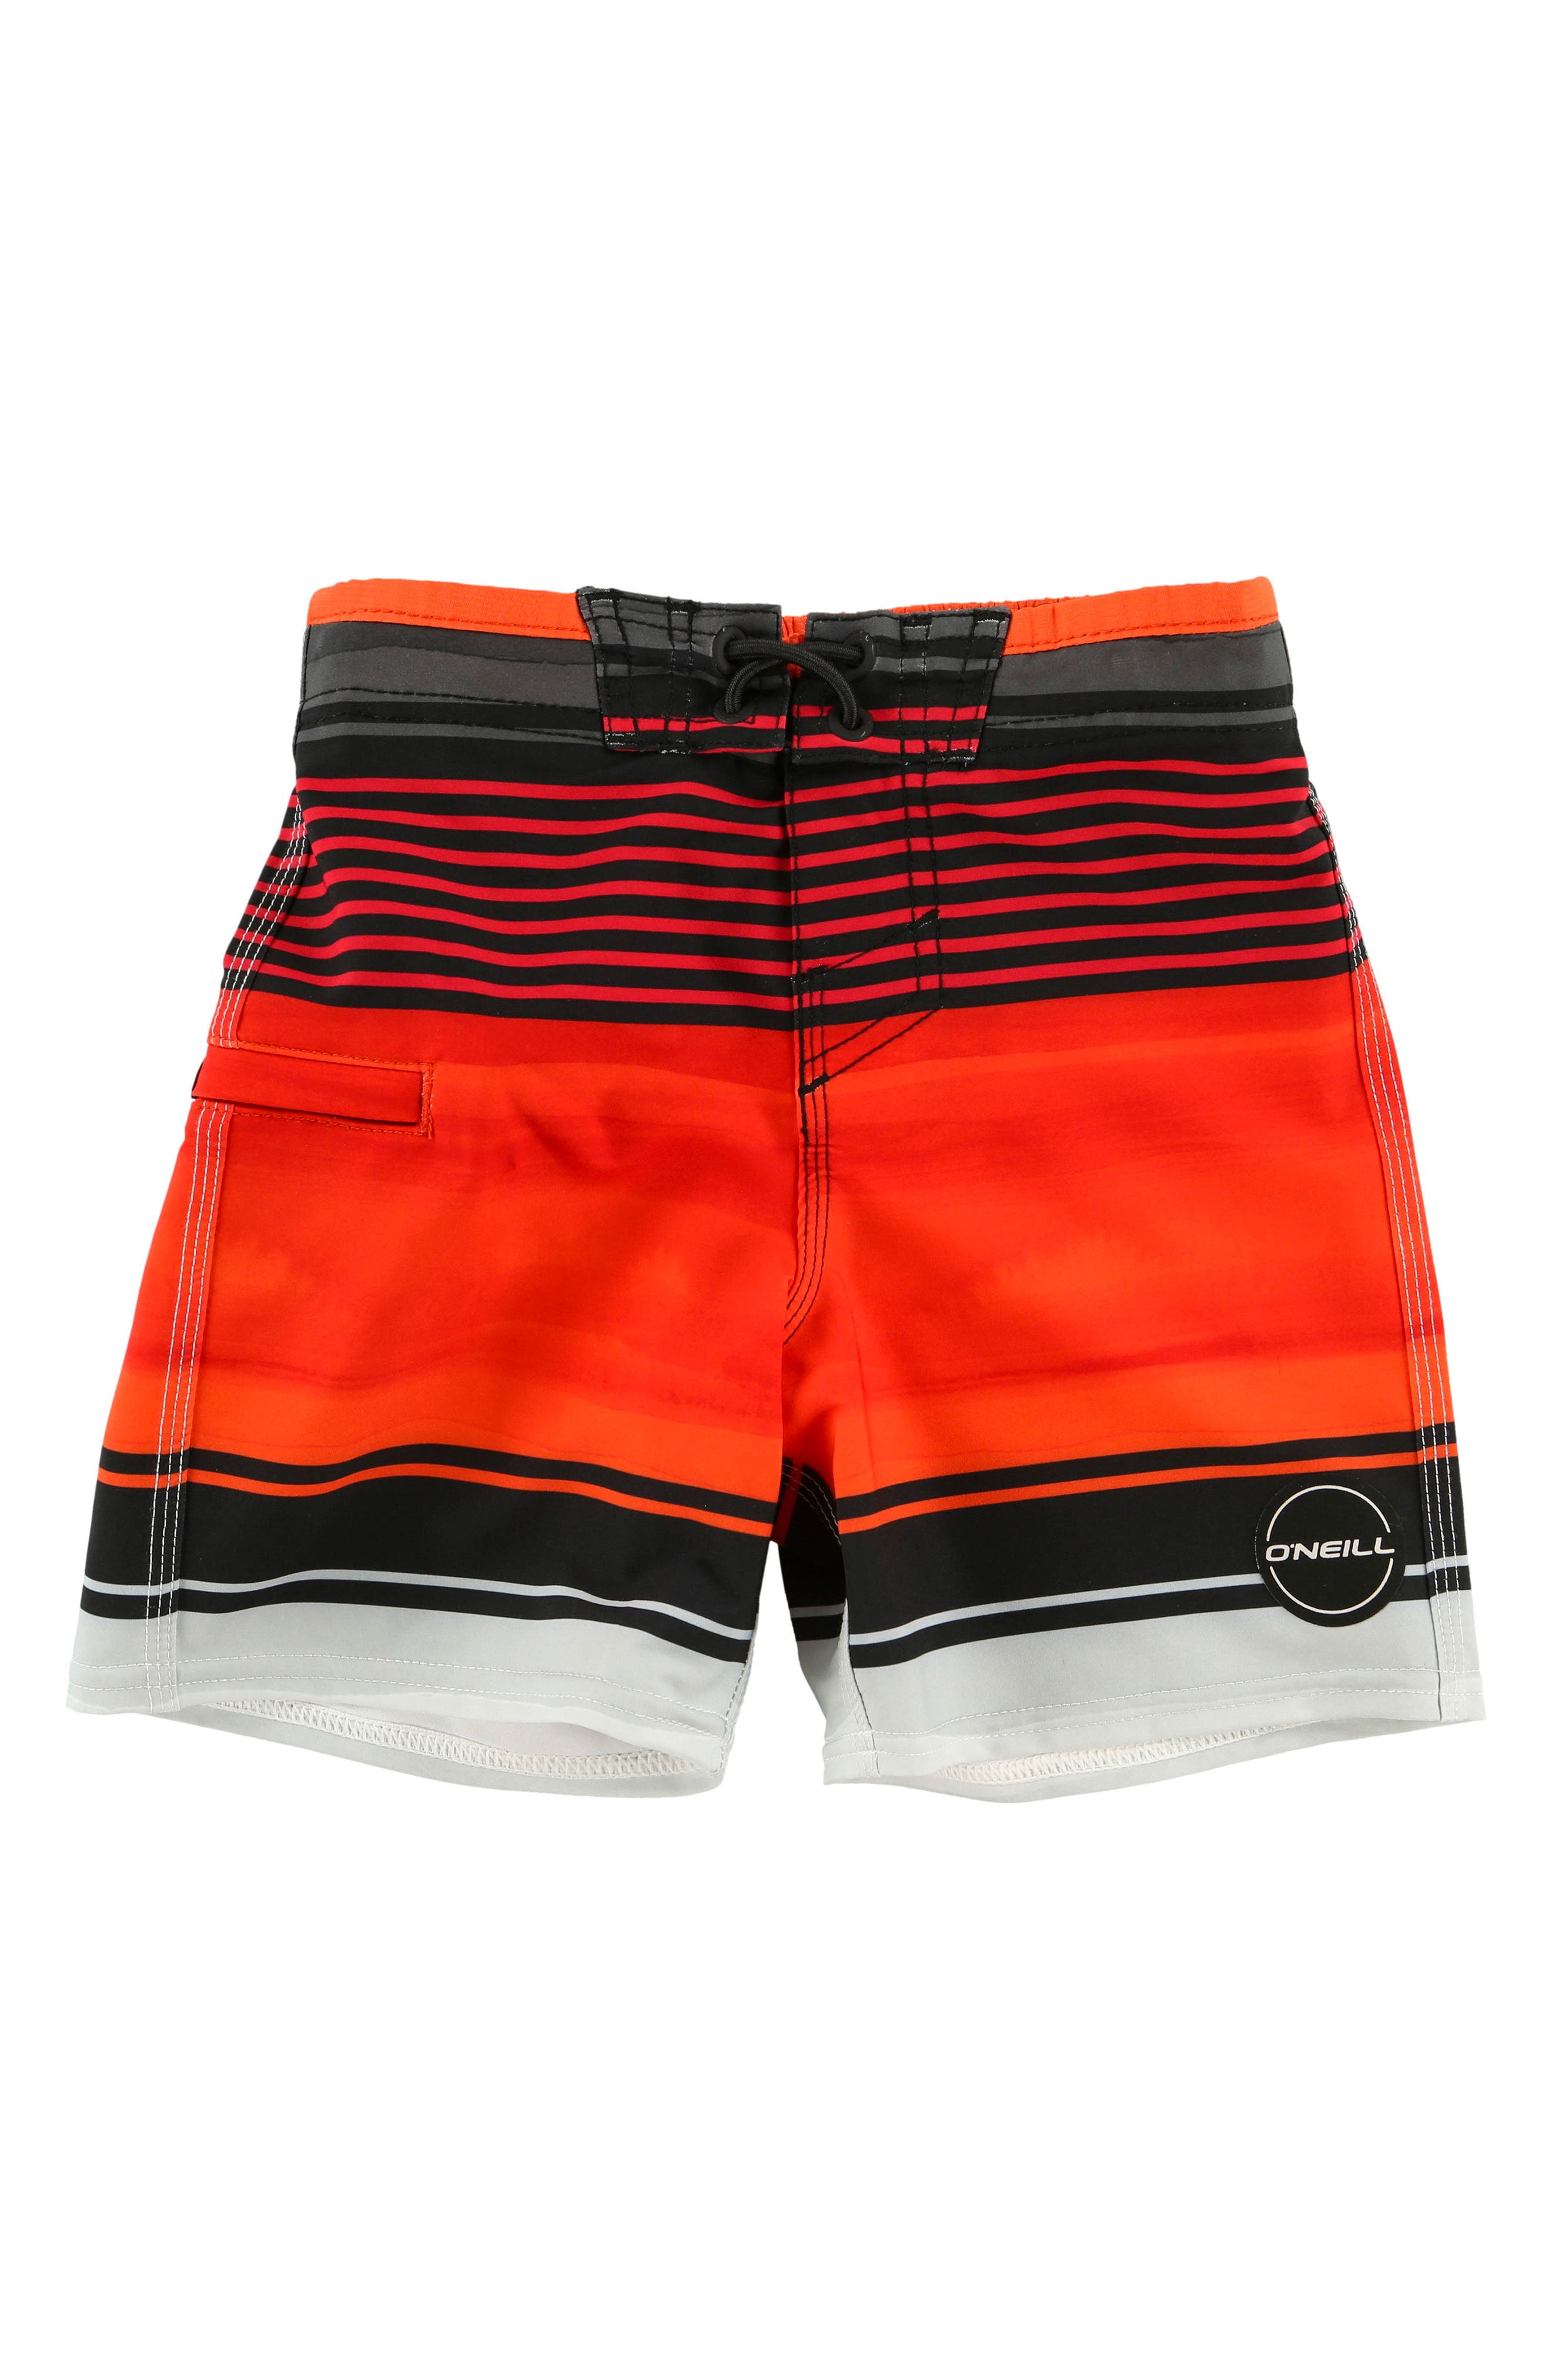 O'Neill Hyperfreak Heist Stretch Board Shorts (Big Boys)